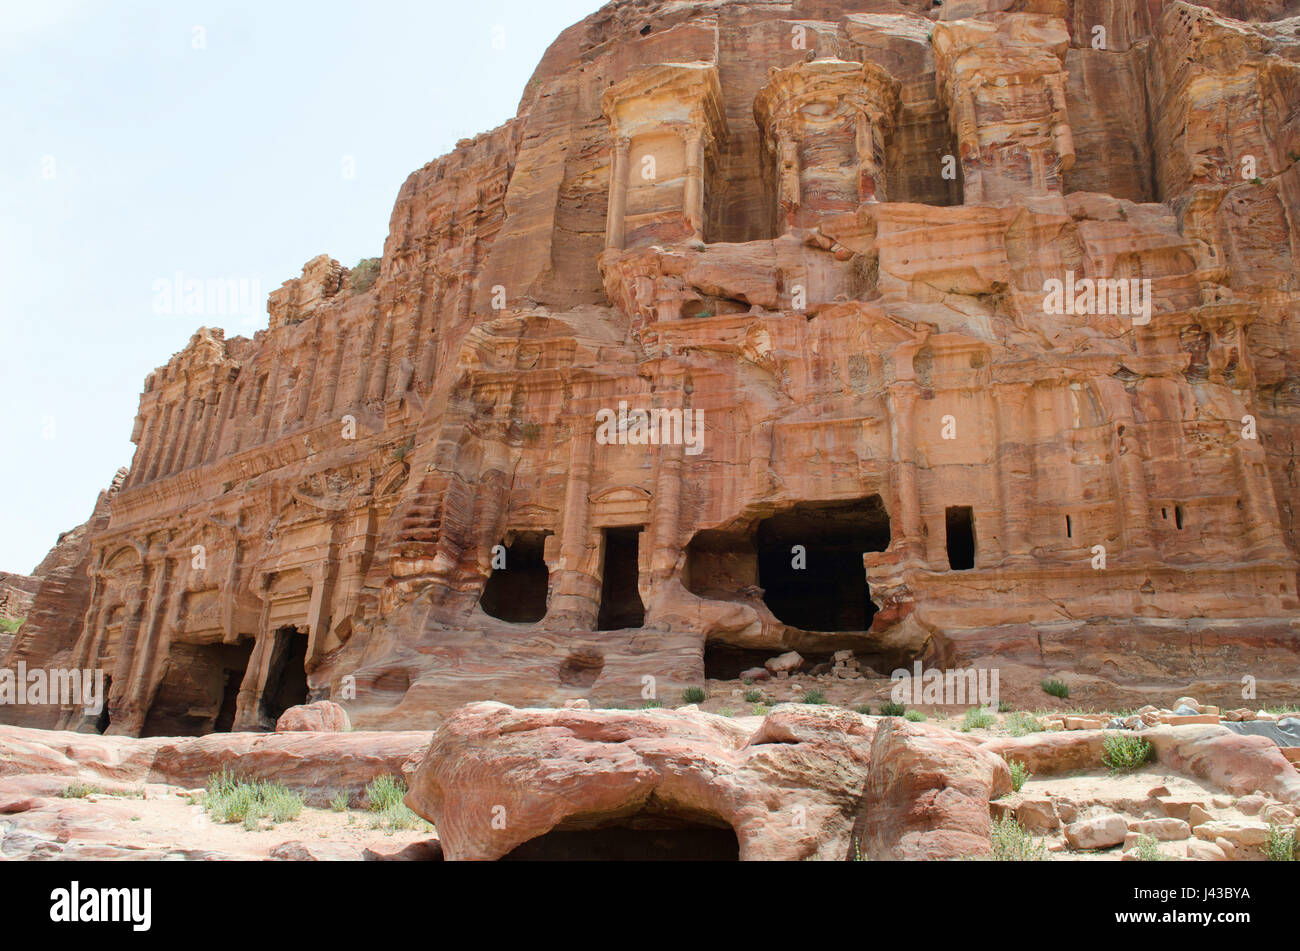 Lost City Of Petra Jordan Middle East Stock Photo